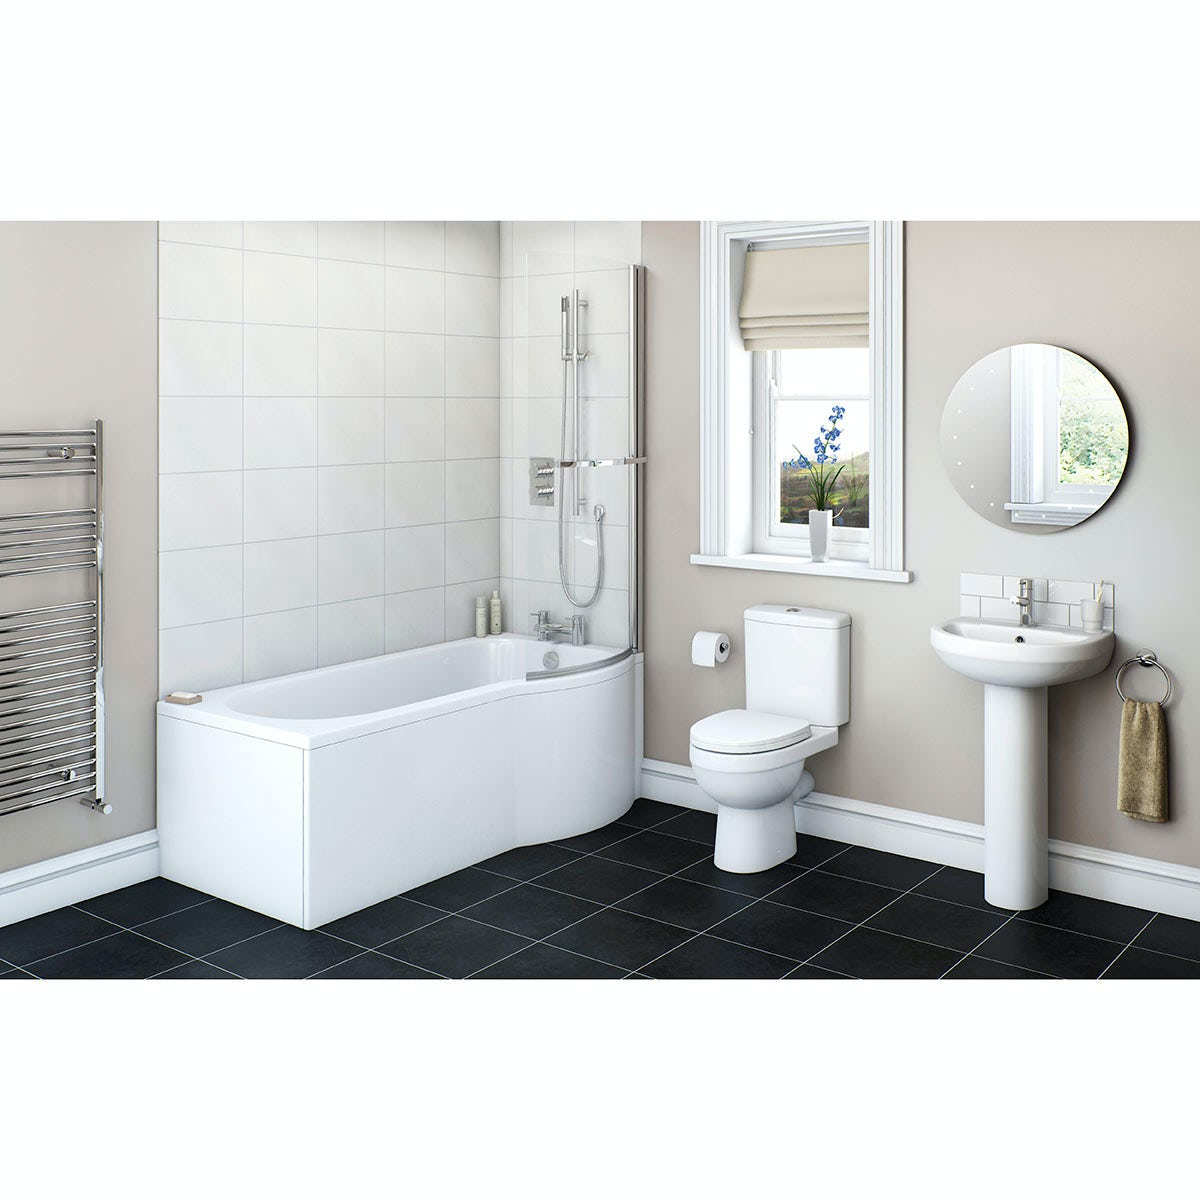 Orchard Eden bathroom suite with right handed P shaped shower bath